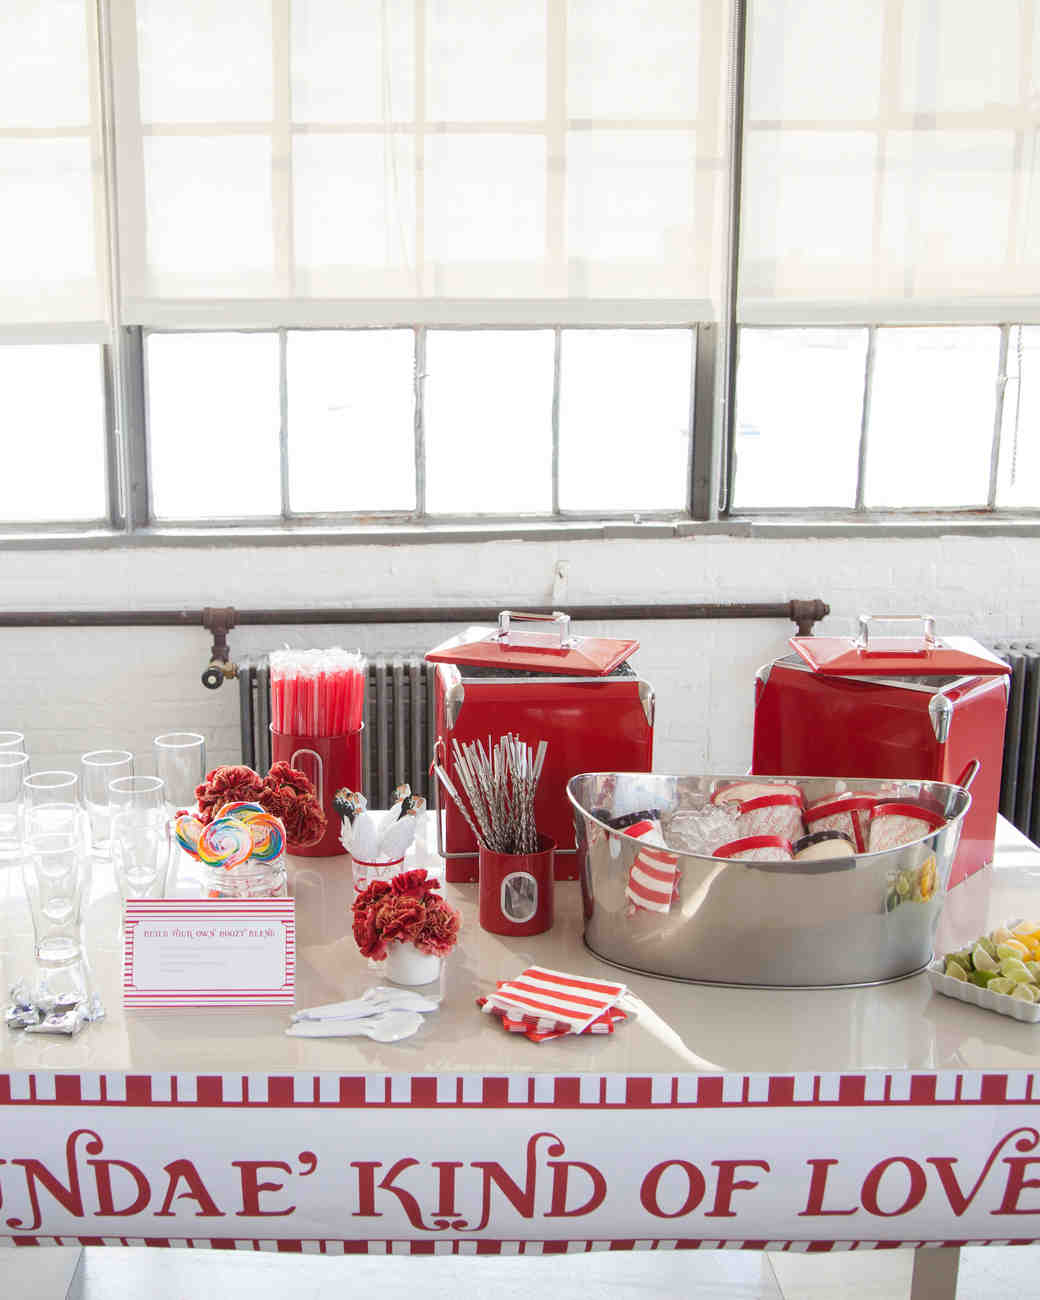 retro-ice-cream-parlor-bridal-shower-ice-cream-bar-wide-shot-0815.jpg